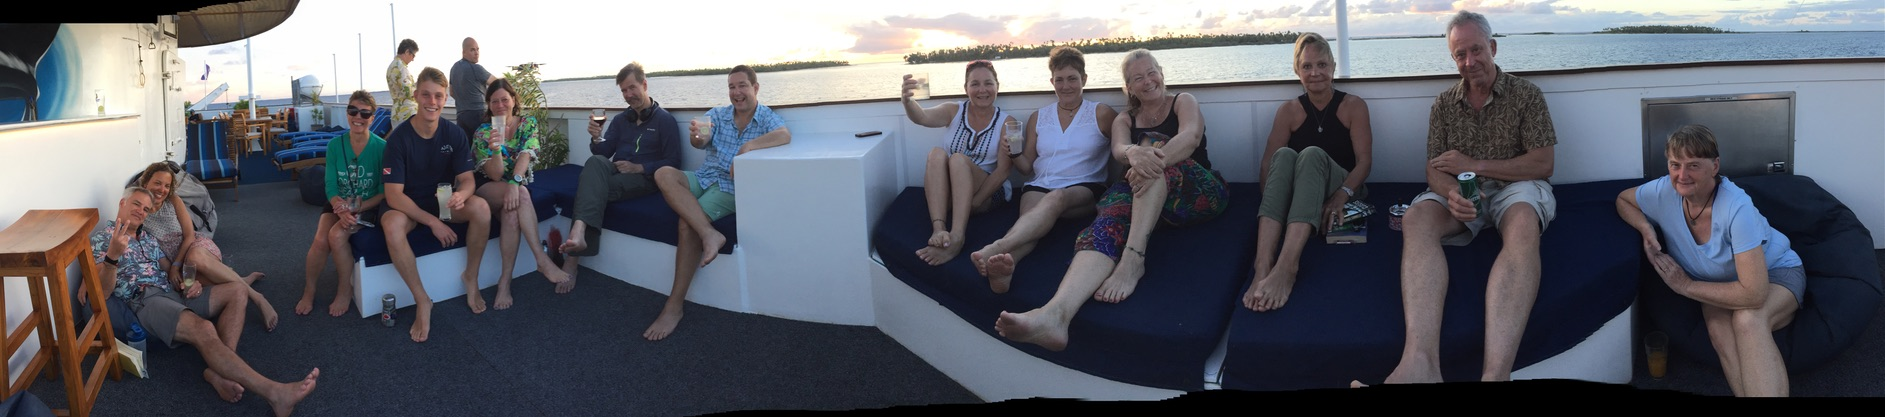 Daily top deck sunset happy hours kept everyone in a great mood!